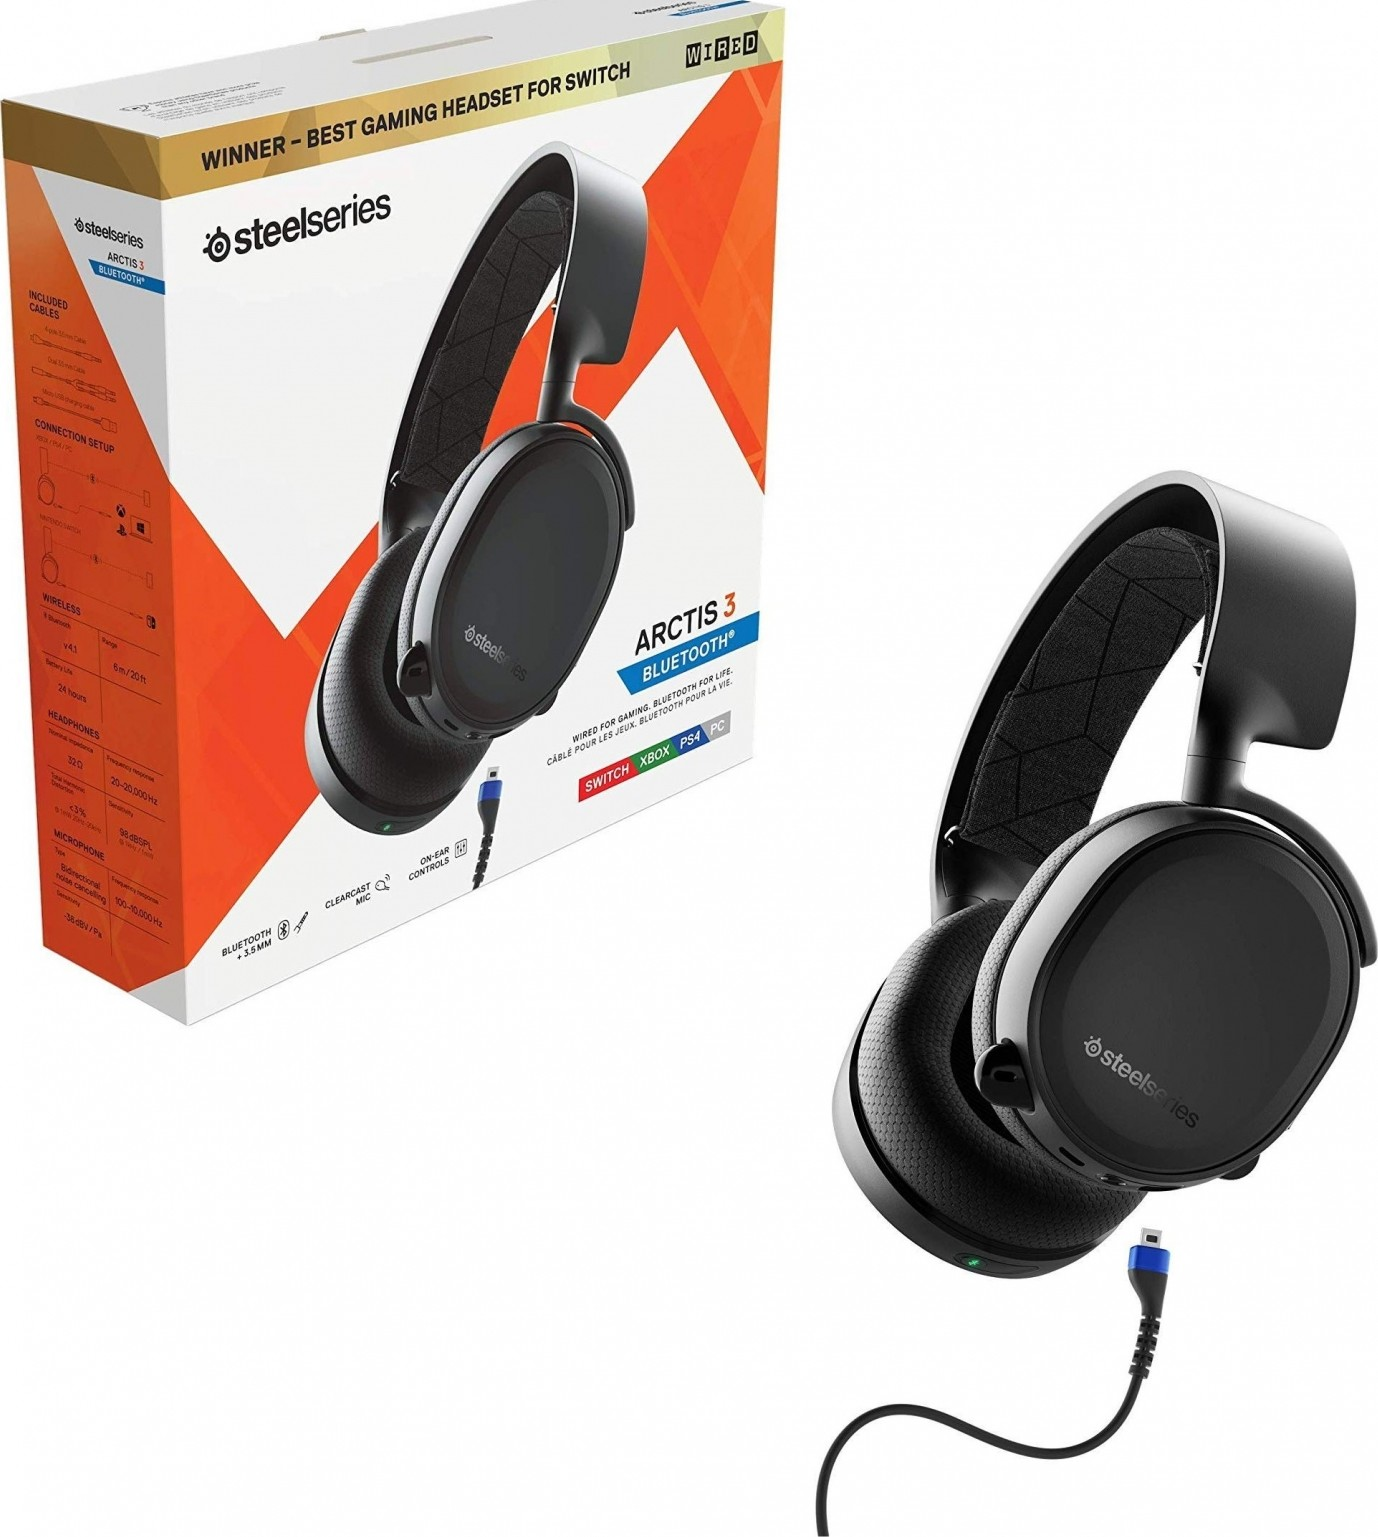 SteelSeries Arctis 3 Bluetooth (2019 Edition) Wired & Wireless Gaming  Headset For PC, Nintendo Switch, PlayStation, Xbox, VR, Mobile – (Black) |  61509